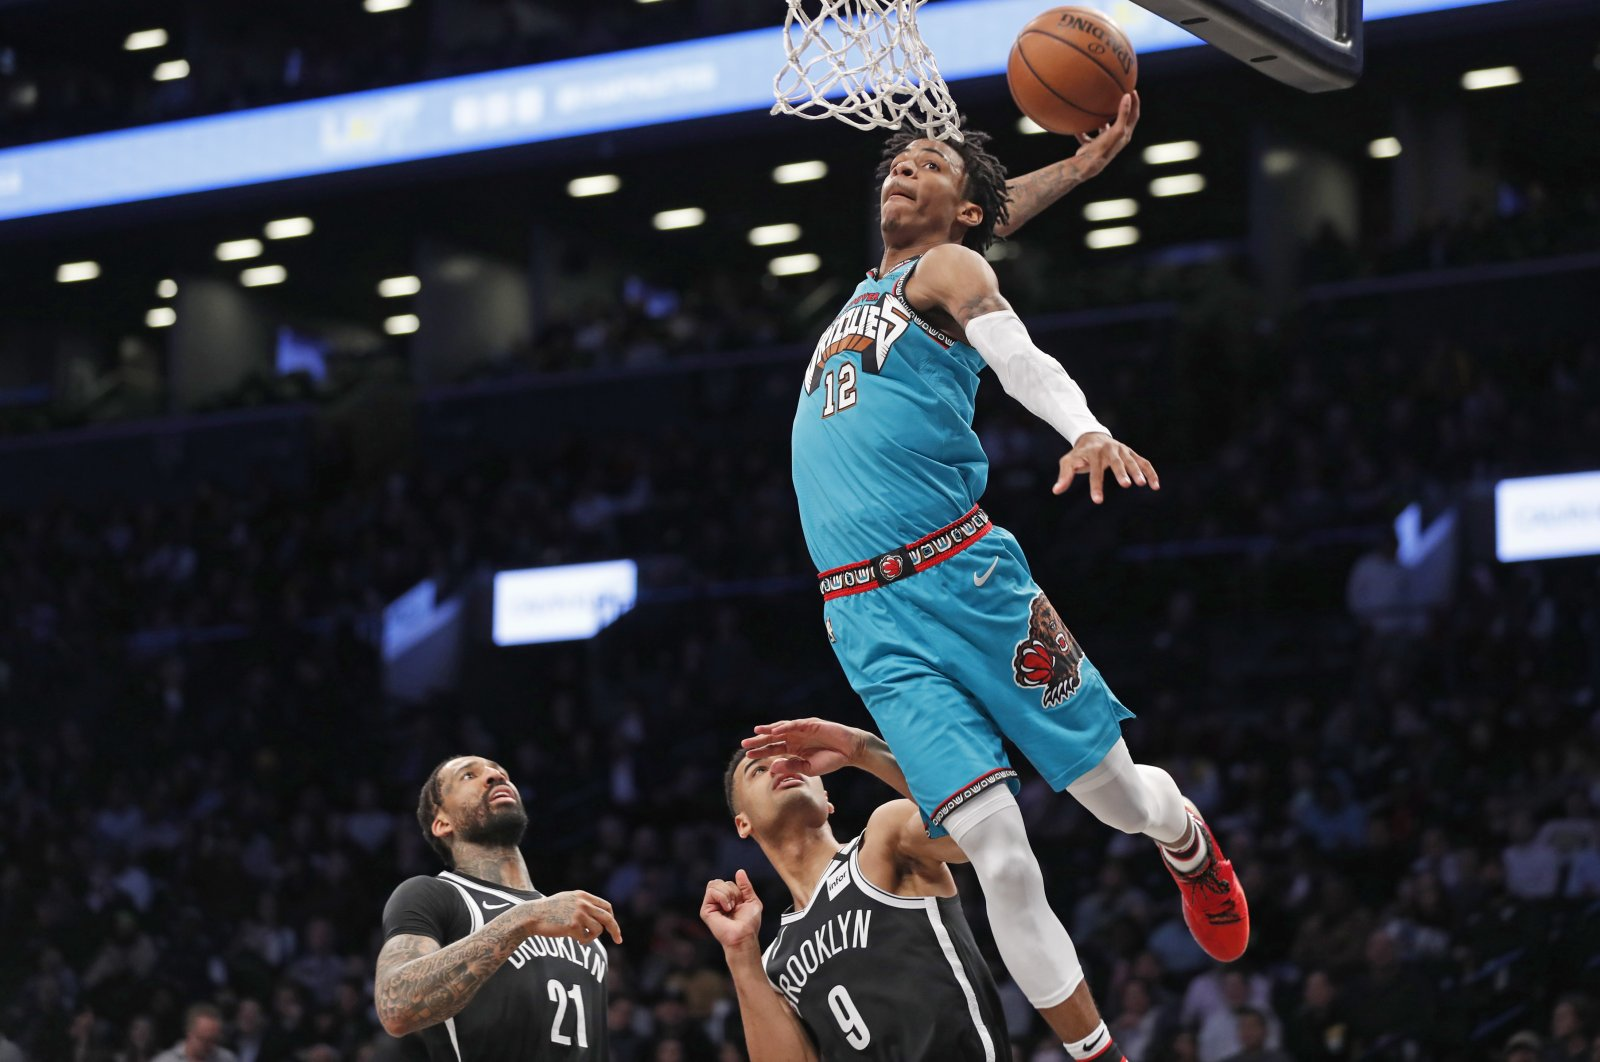 Memphis Grizzlies guard Ja Morant goes up for a dunk during an NBA game in New York City, New York, U.S., March 4, 2020. (AP Photo)